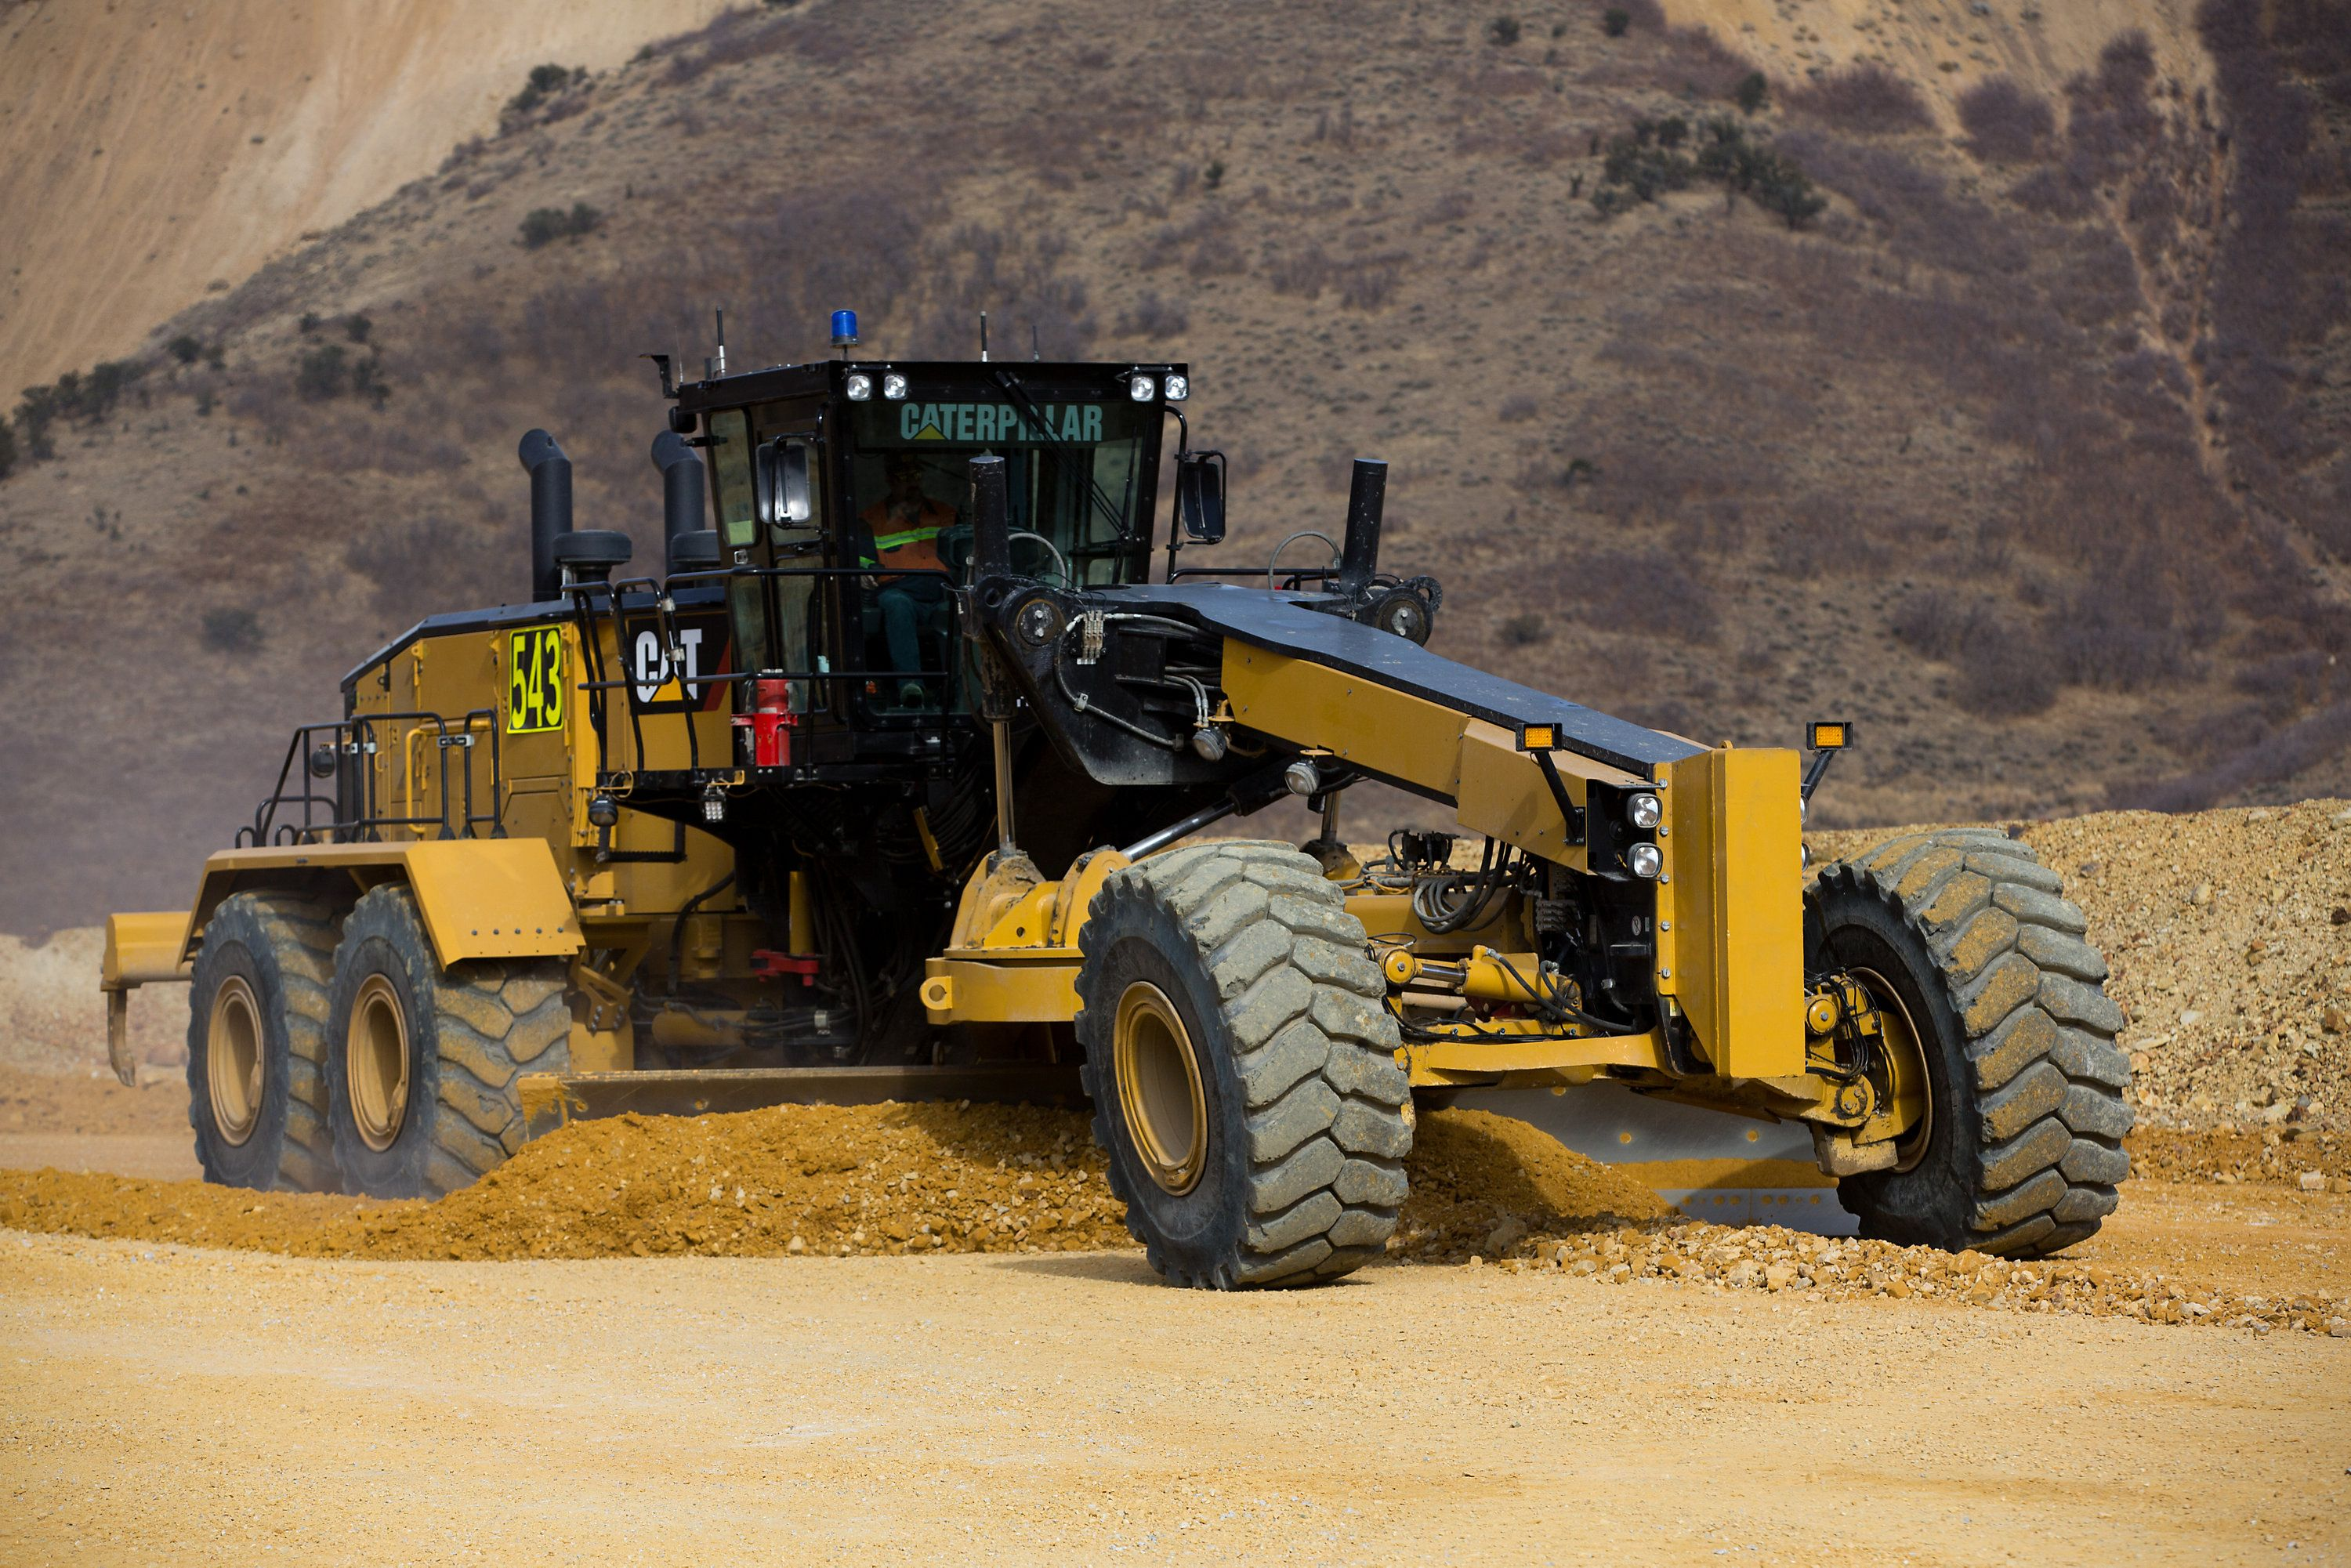 New Cat® 24 Motor Grader improves performance, lowers costs and advances safe operation - Rock & Dirt Blog Construction Equipment News & Information